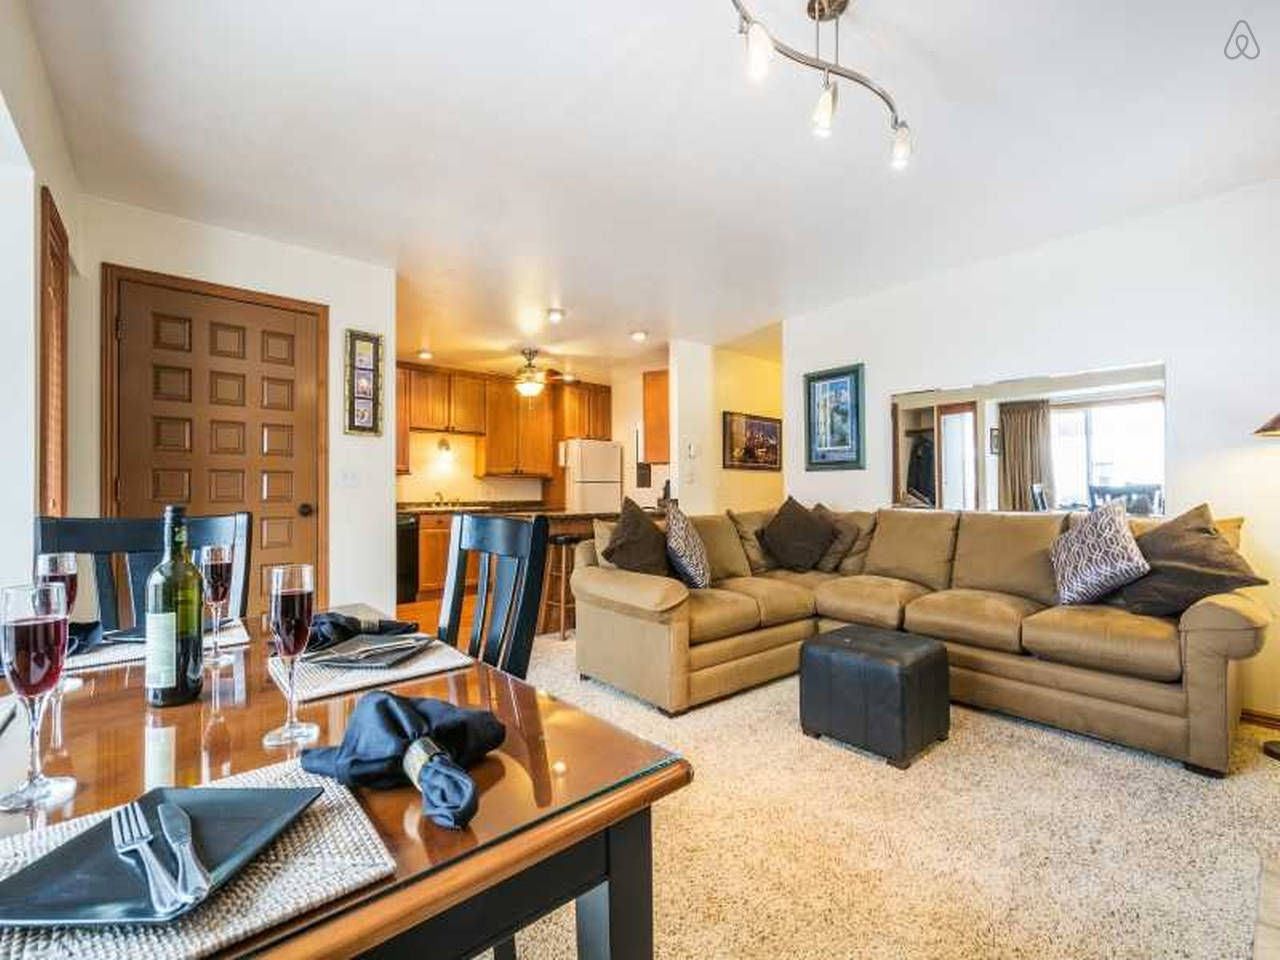 2 br across from Canyons. Views! - vacation rental in Park ...